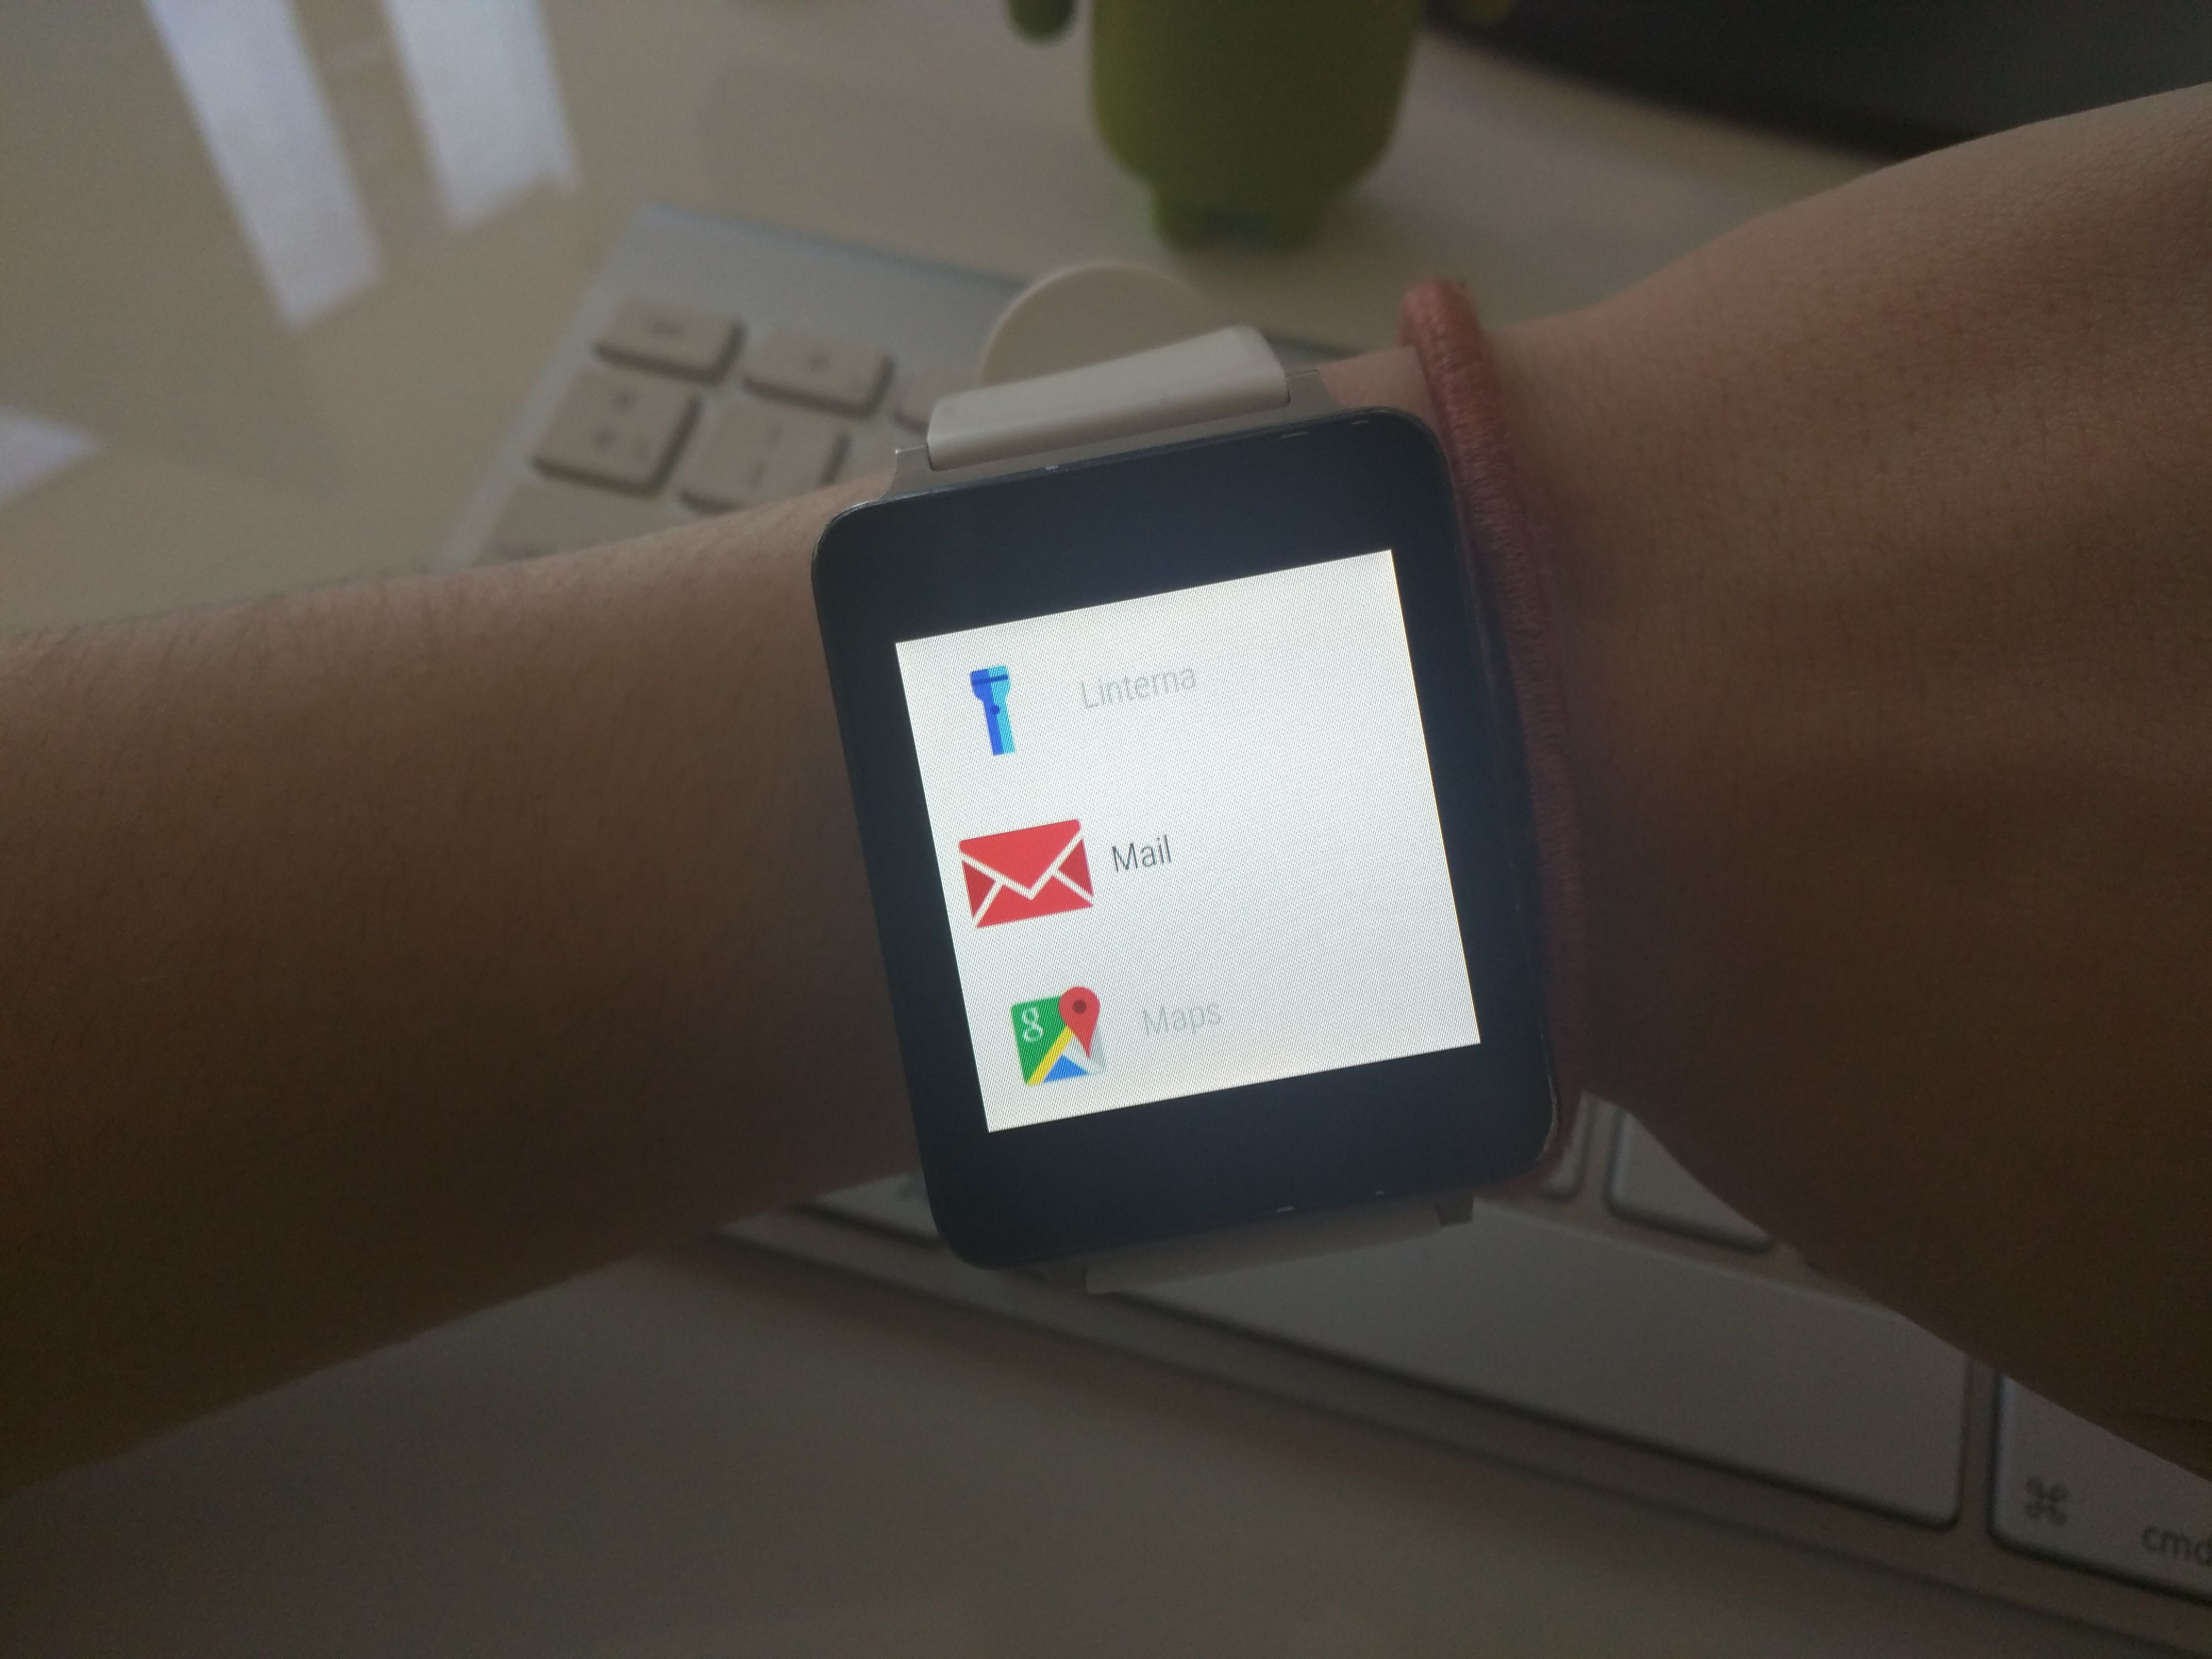 responder-leer-correos-gmail-android-wear-5.1.1